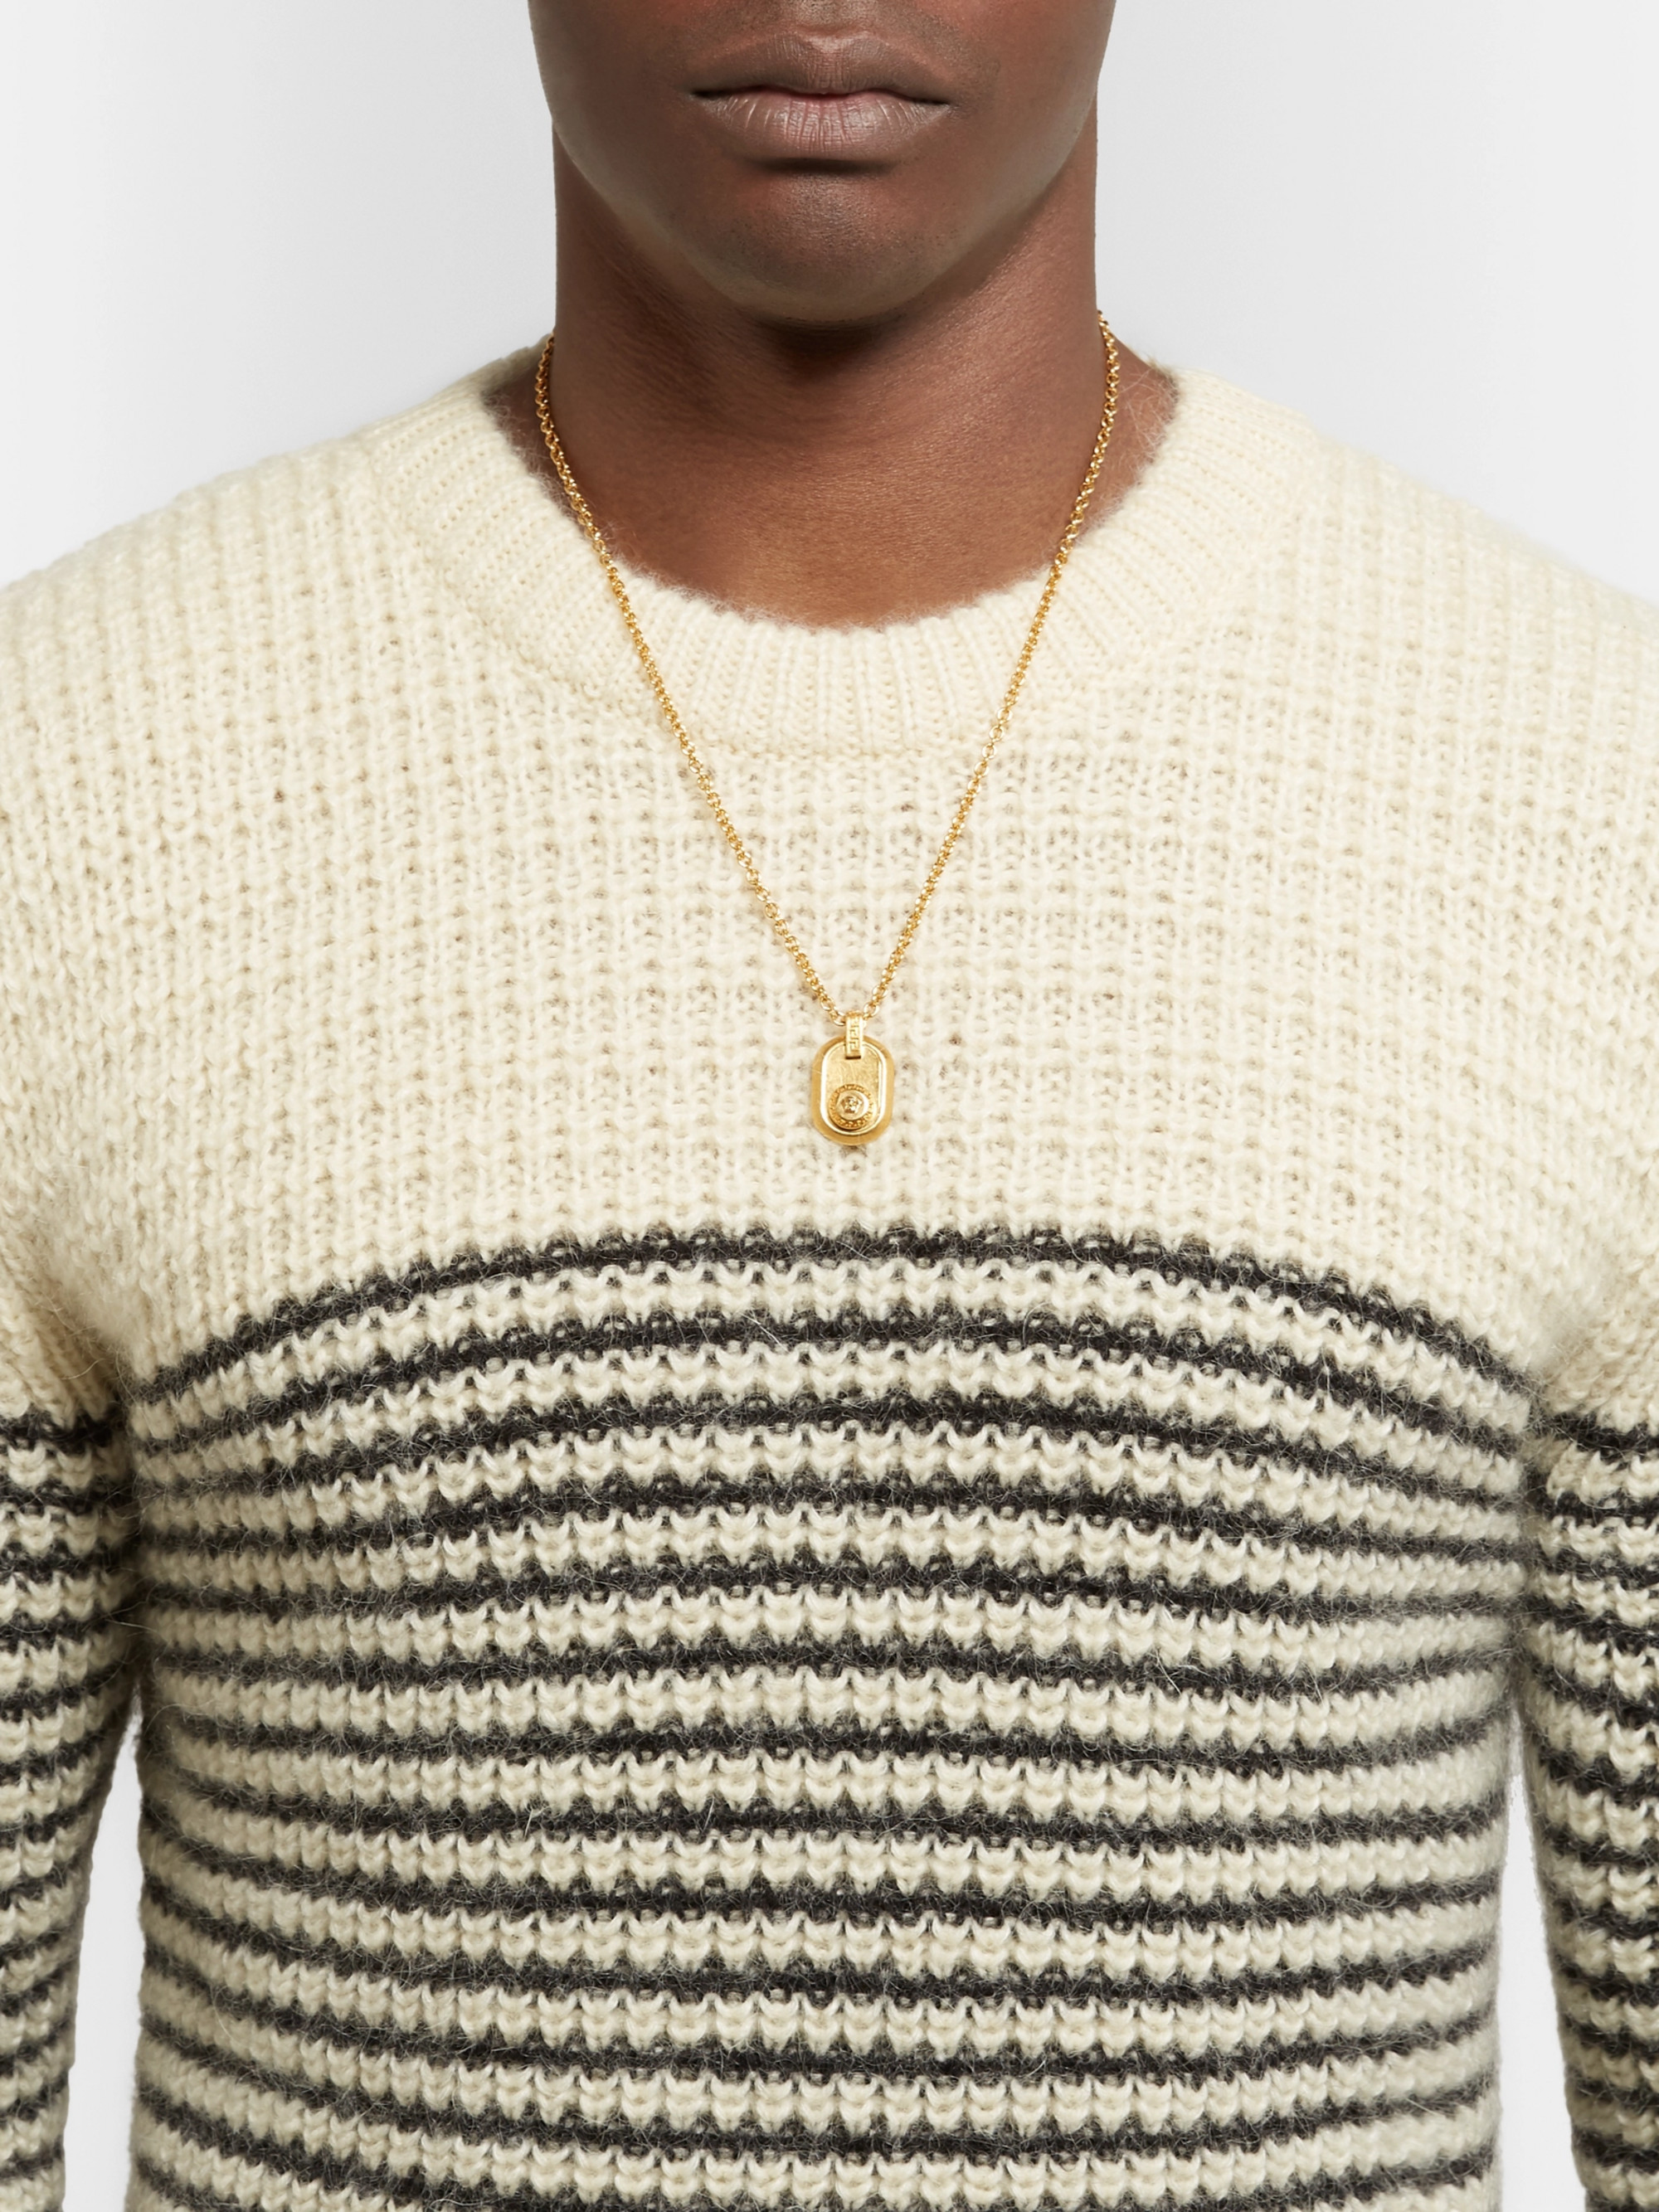 Versace Logo-Detailed Gold-Tone Necklace